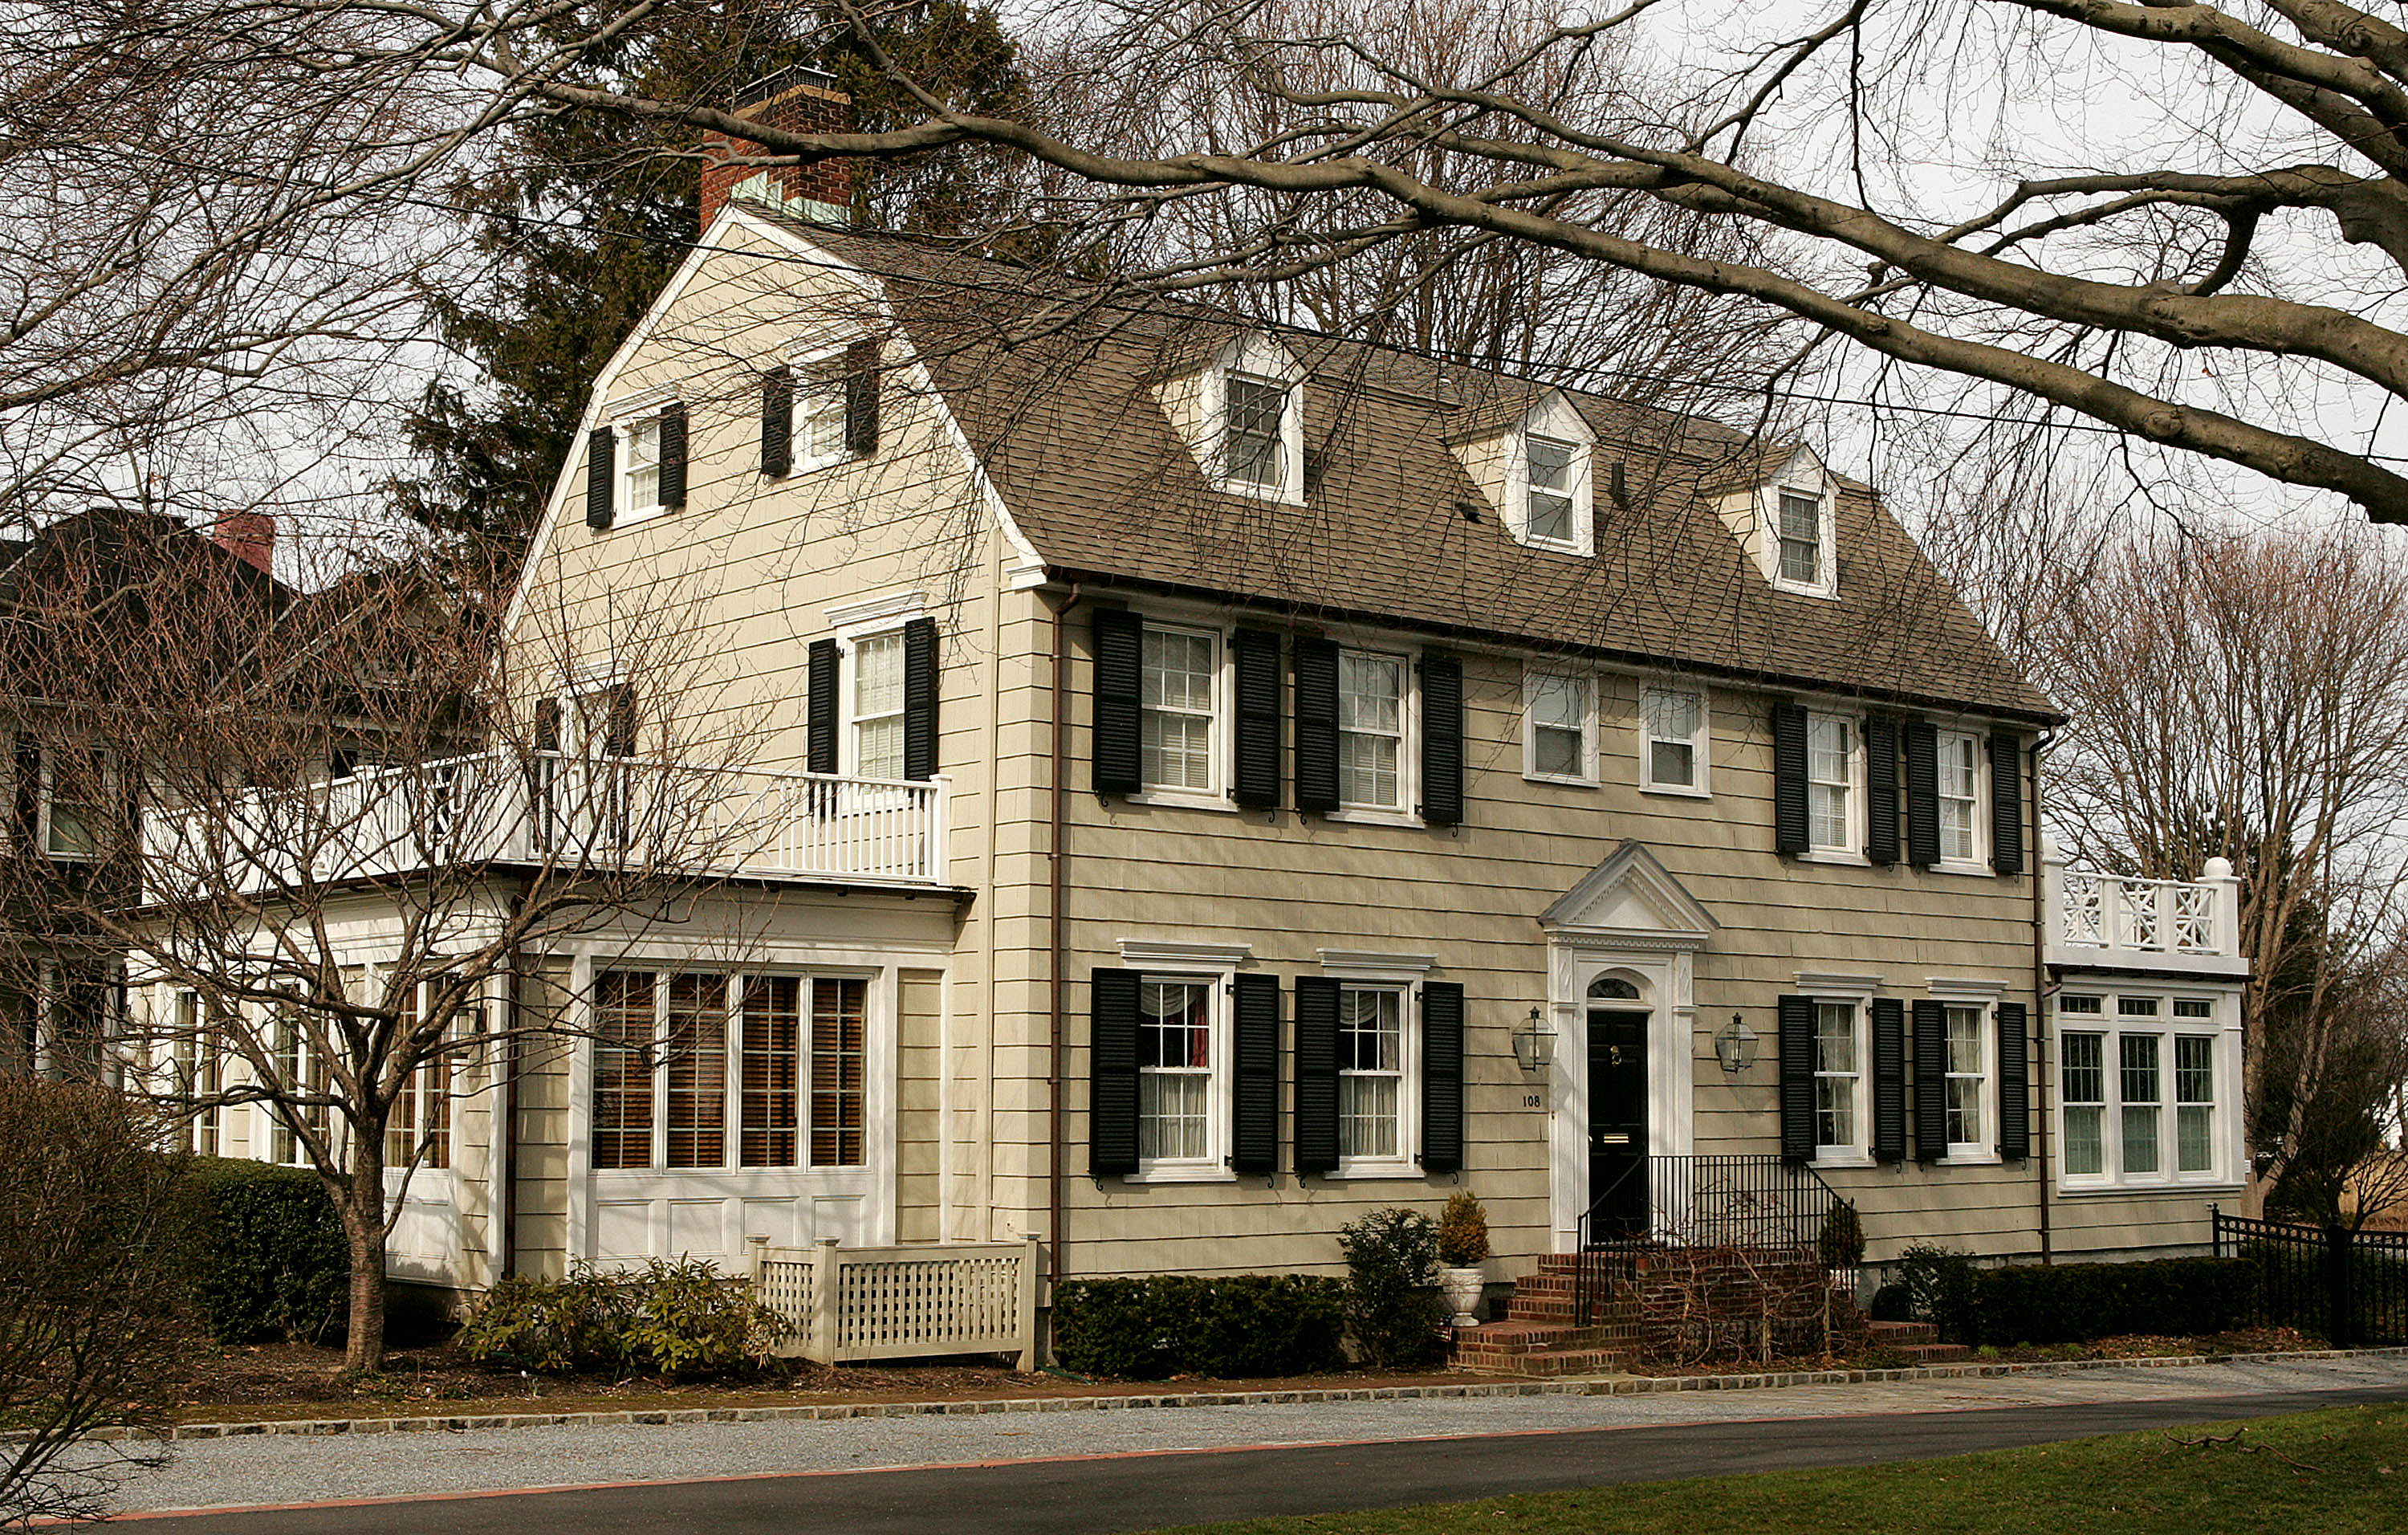 The Real Amityville Horror House Up For Sale, Take A Look Inside GettyImages 53314654